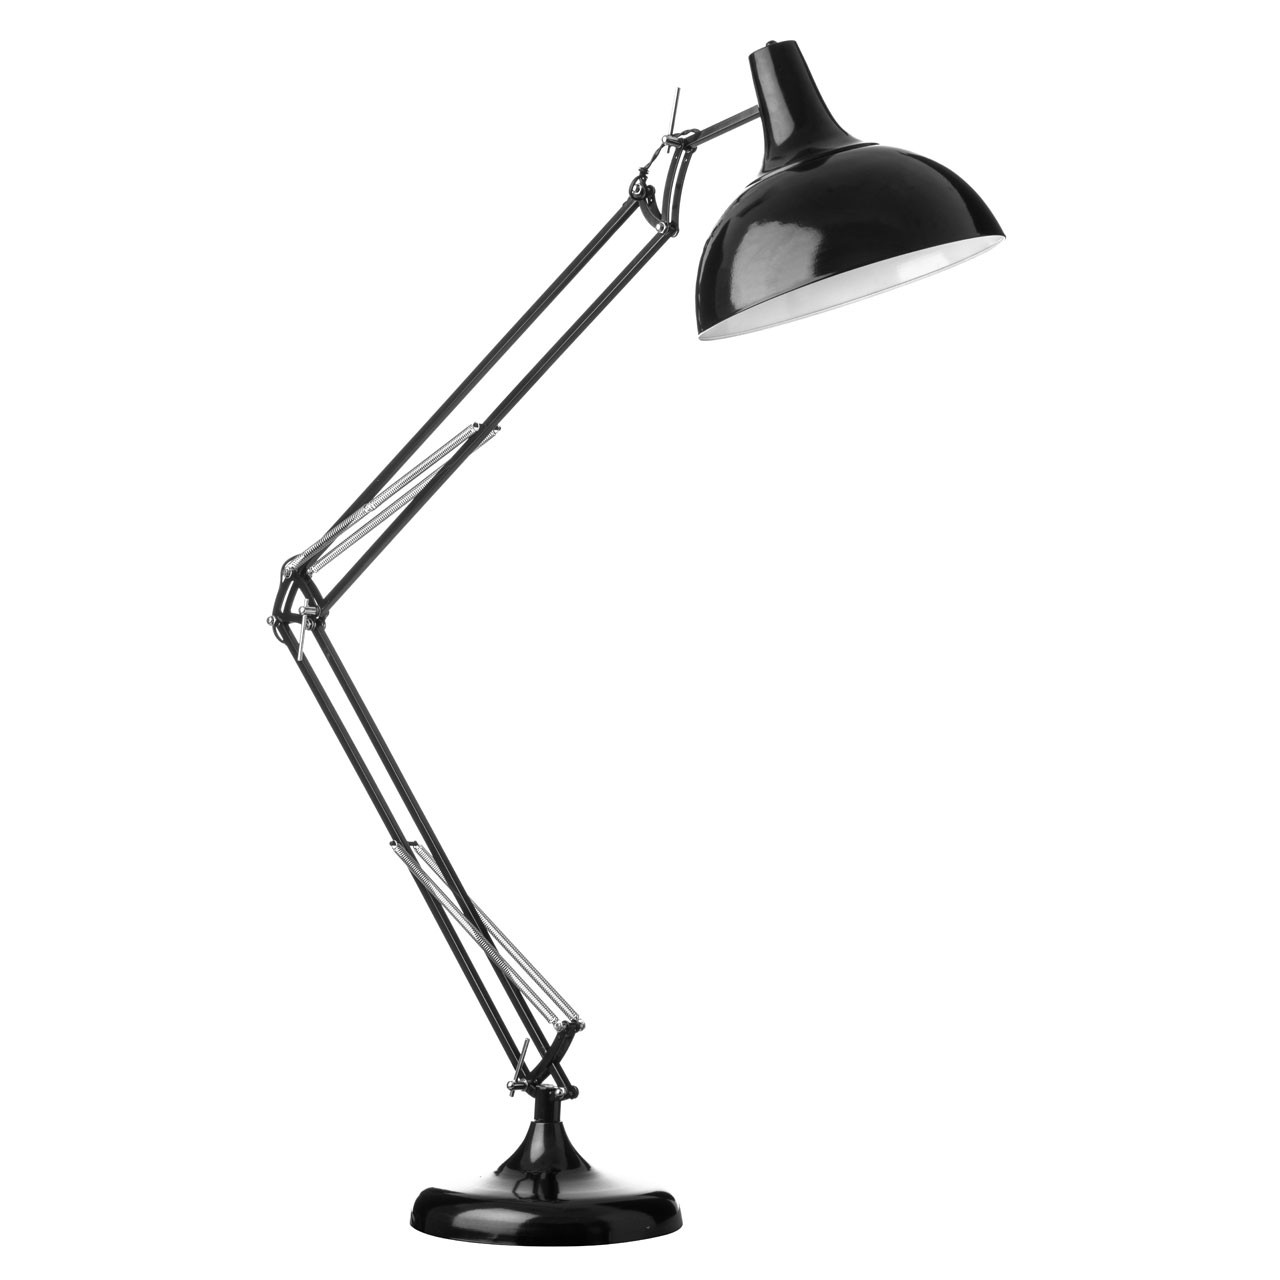 Prime Furnishing Adjustable Floor Lamp, Metal - Black